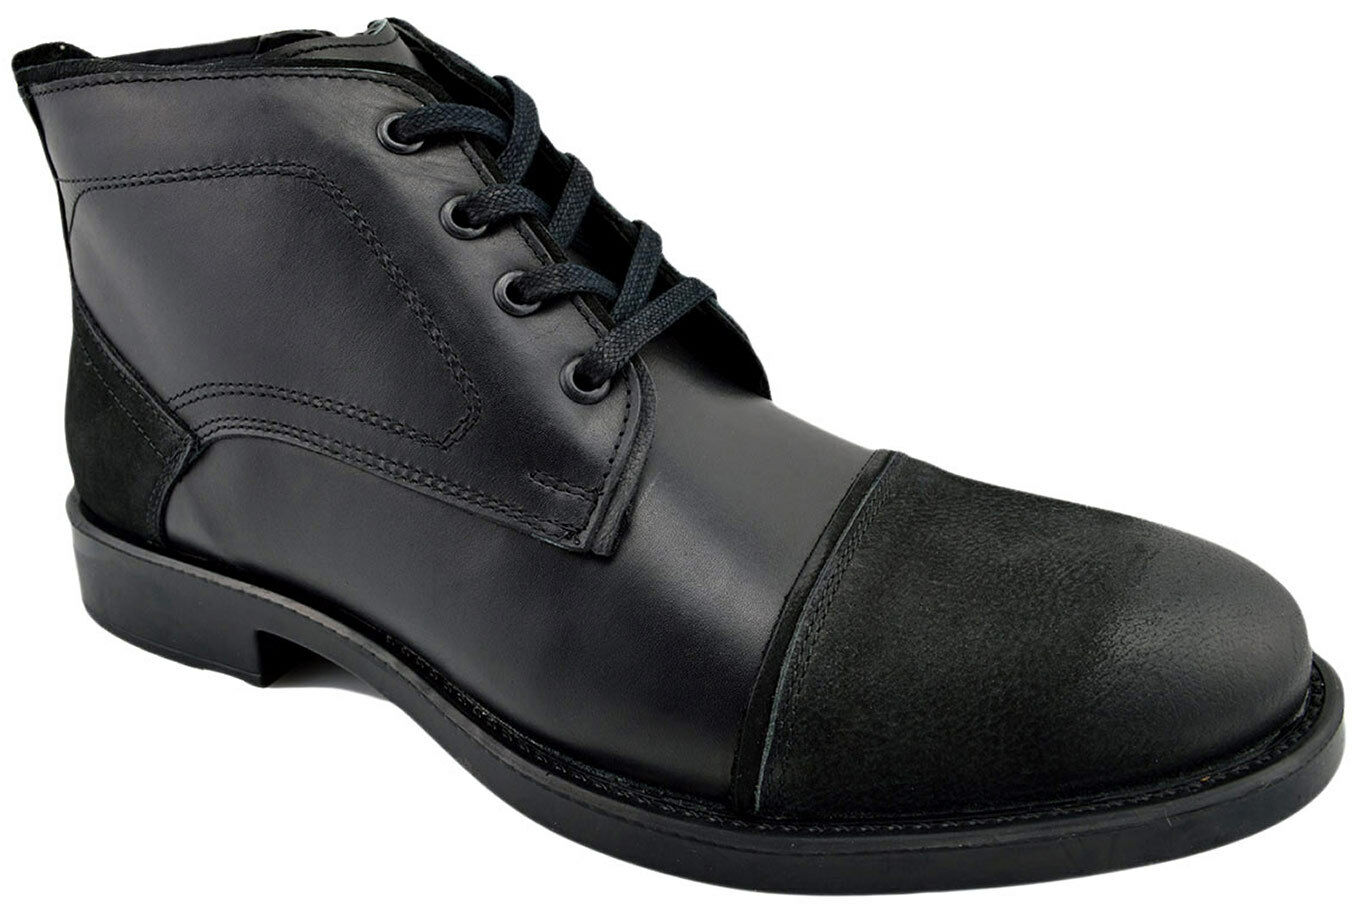 230 OVATTO Black Calf & Suede Leather Ankle Boots Men shoes NEW COLLECTION